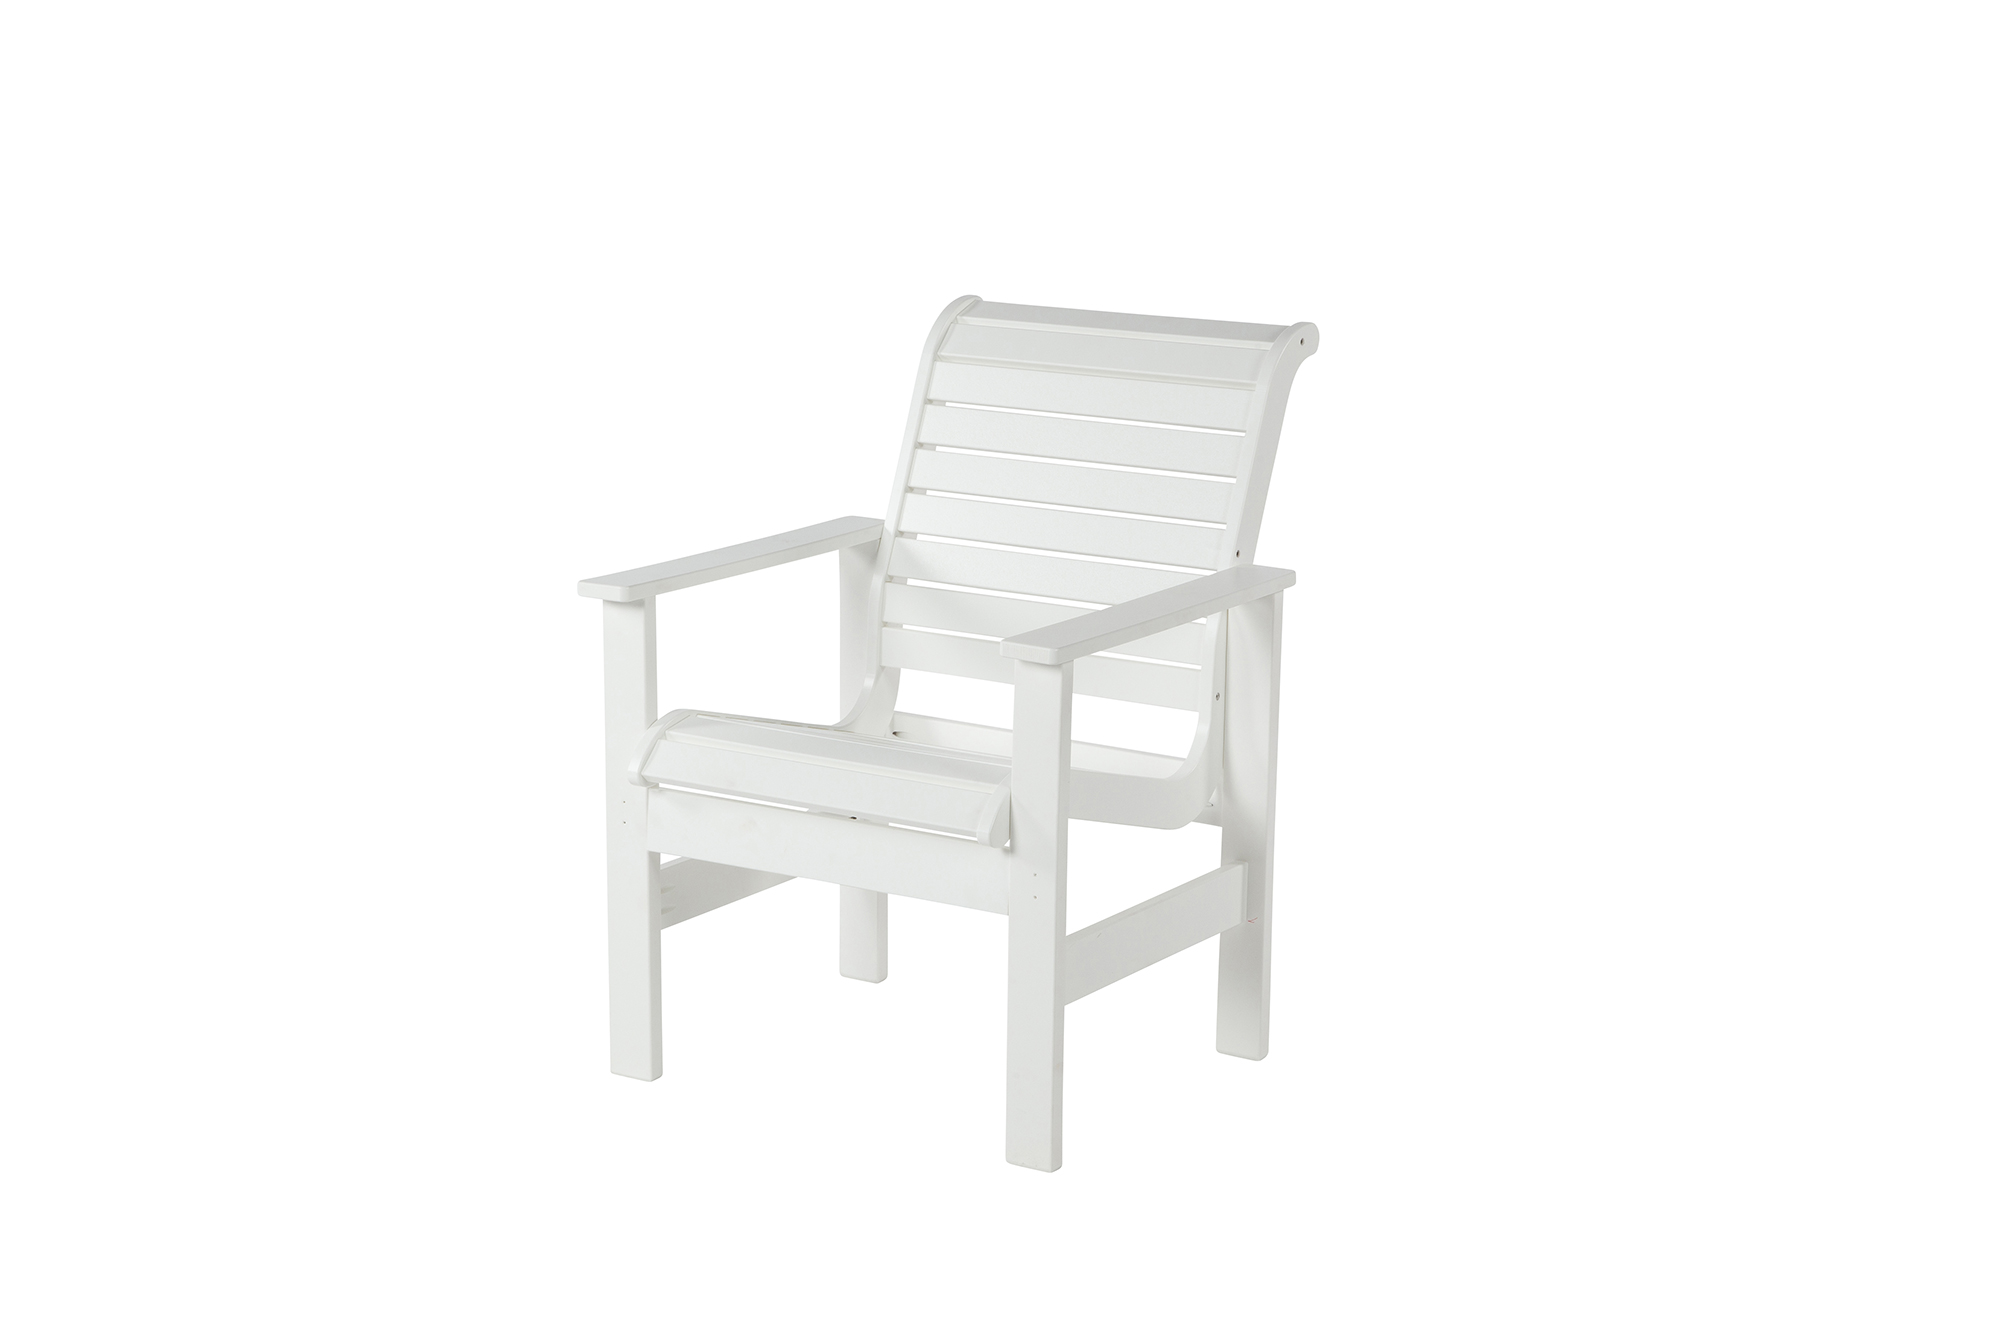 SOLID DINING CHAIR W4450 $319.00